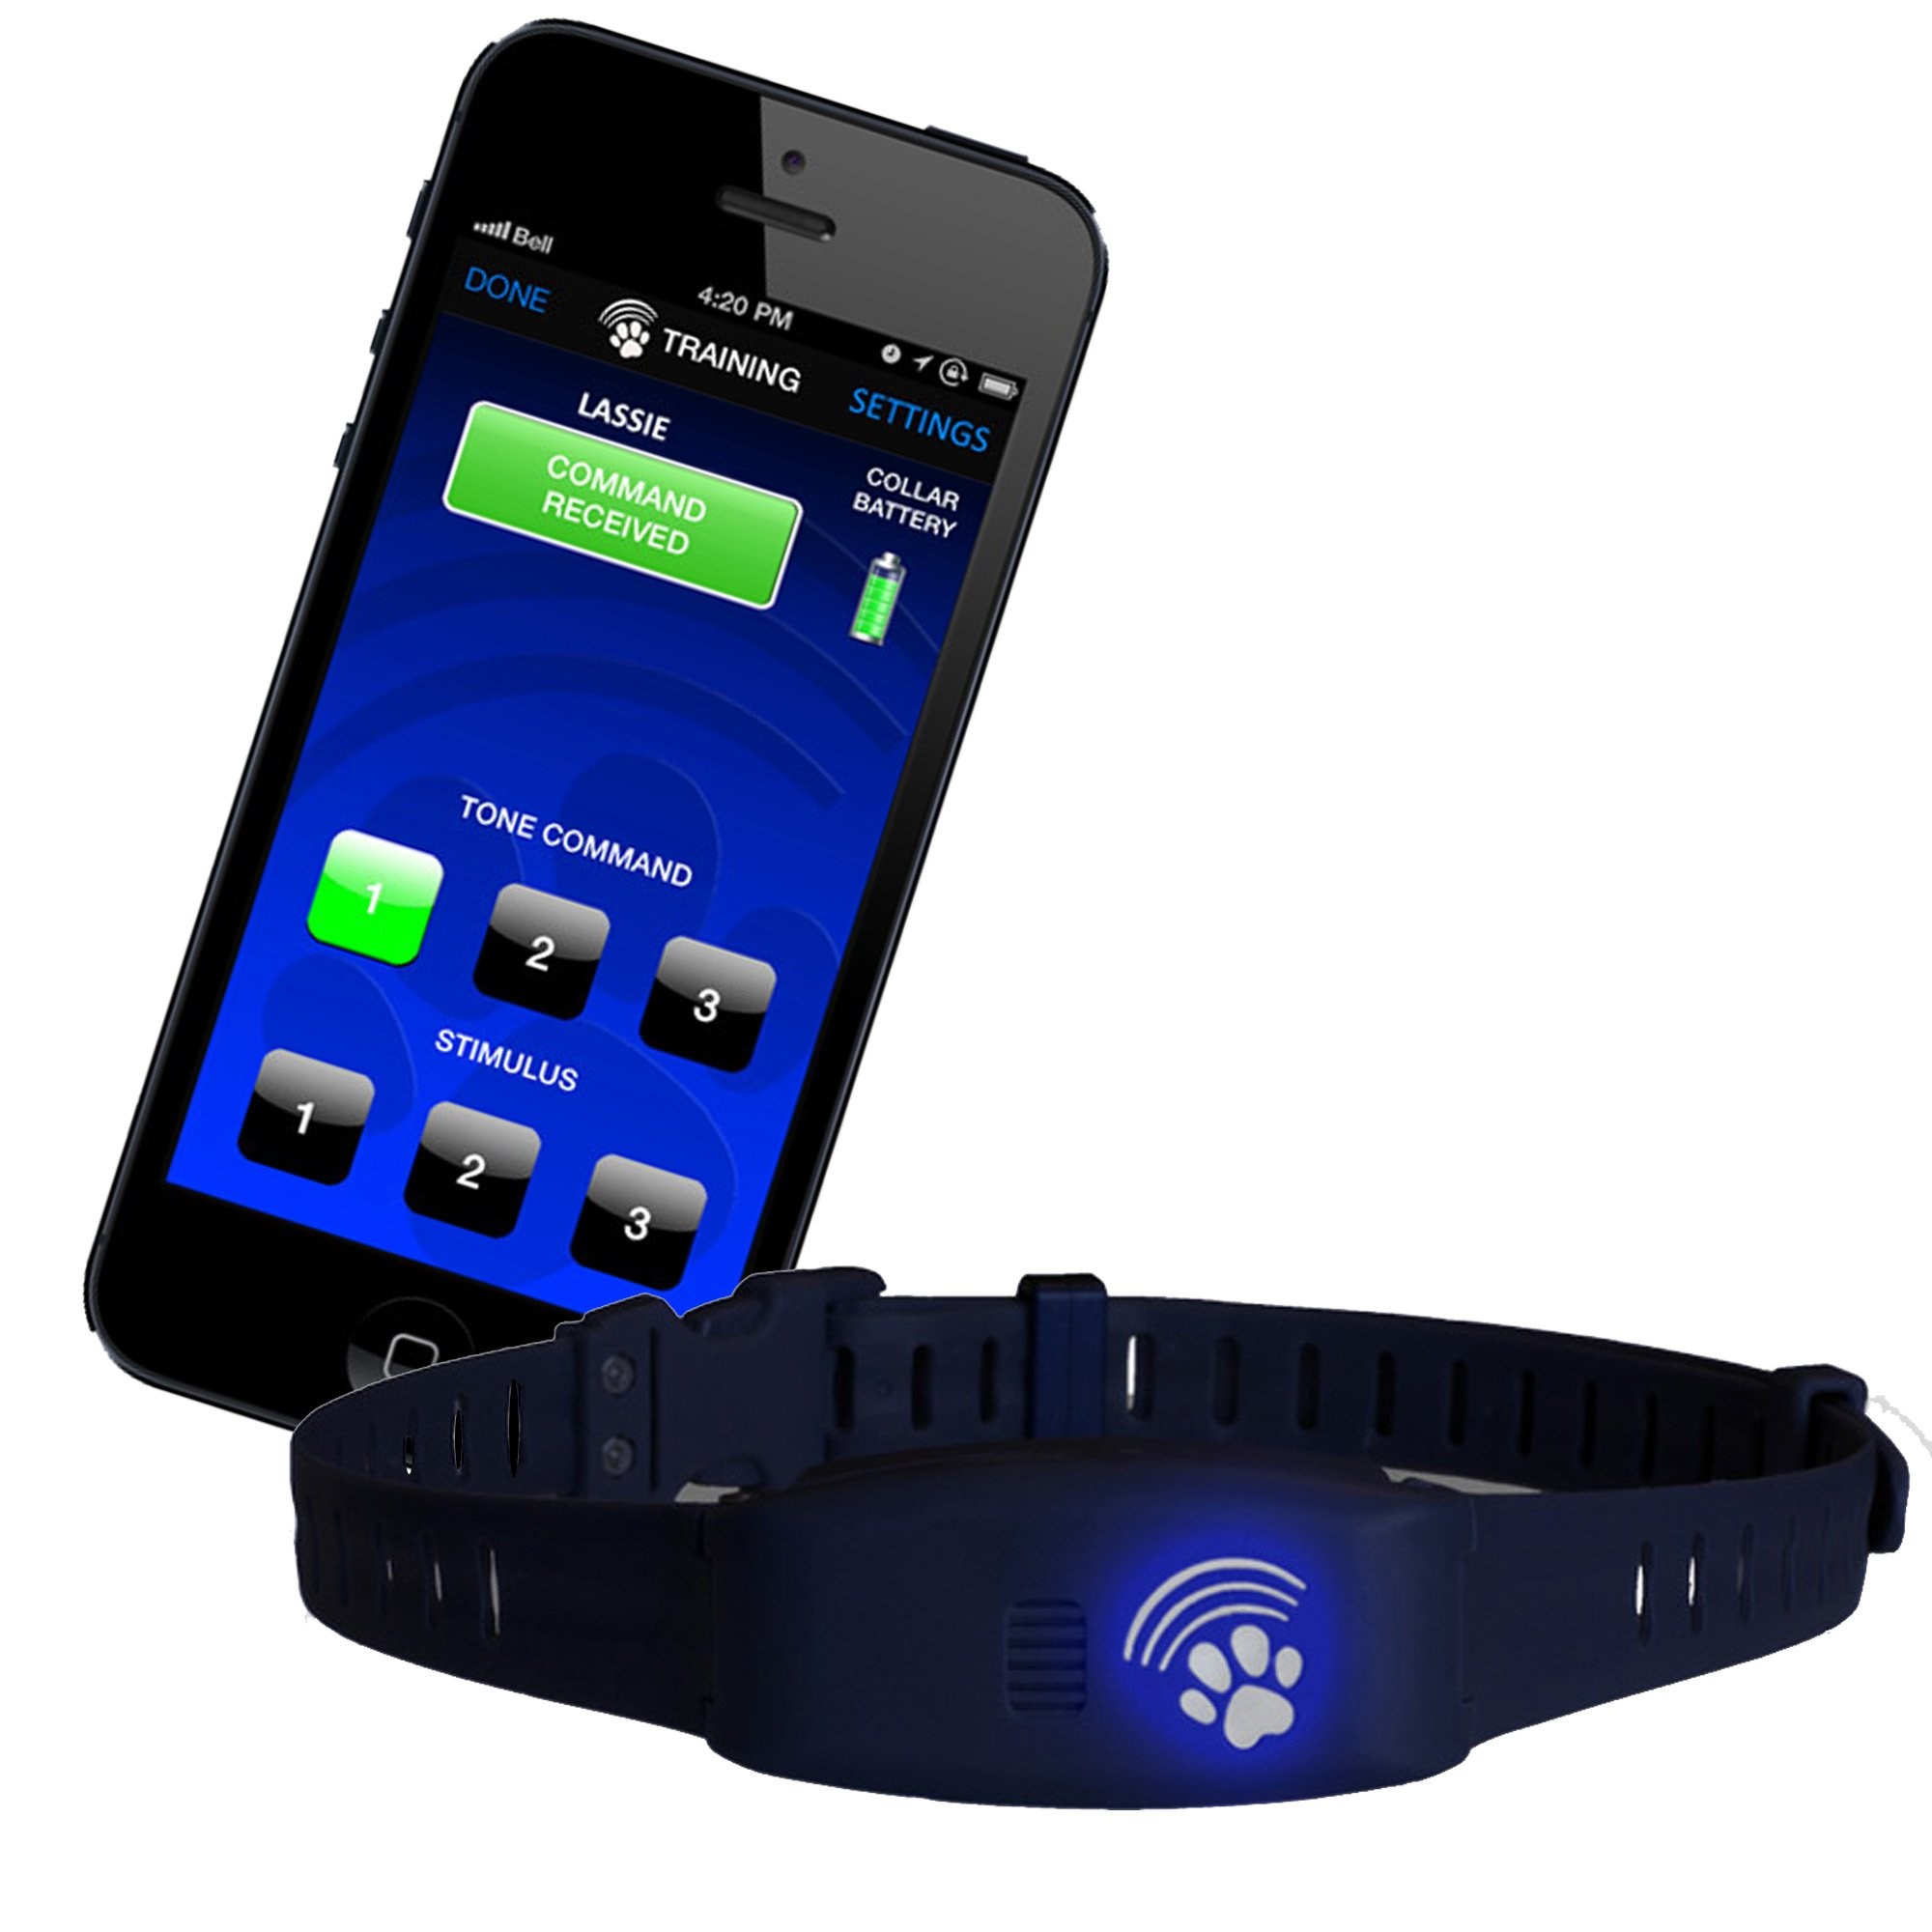 High Tech Pet Bluefang Smart Phone Remote Dog Training and Bark Control Collar, BF-16, Navy Blue